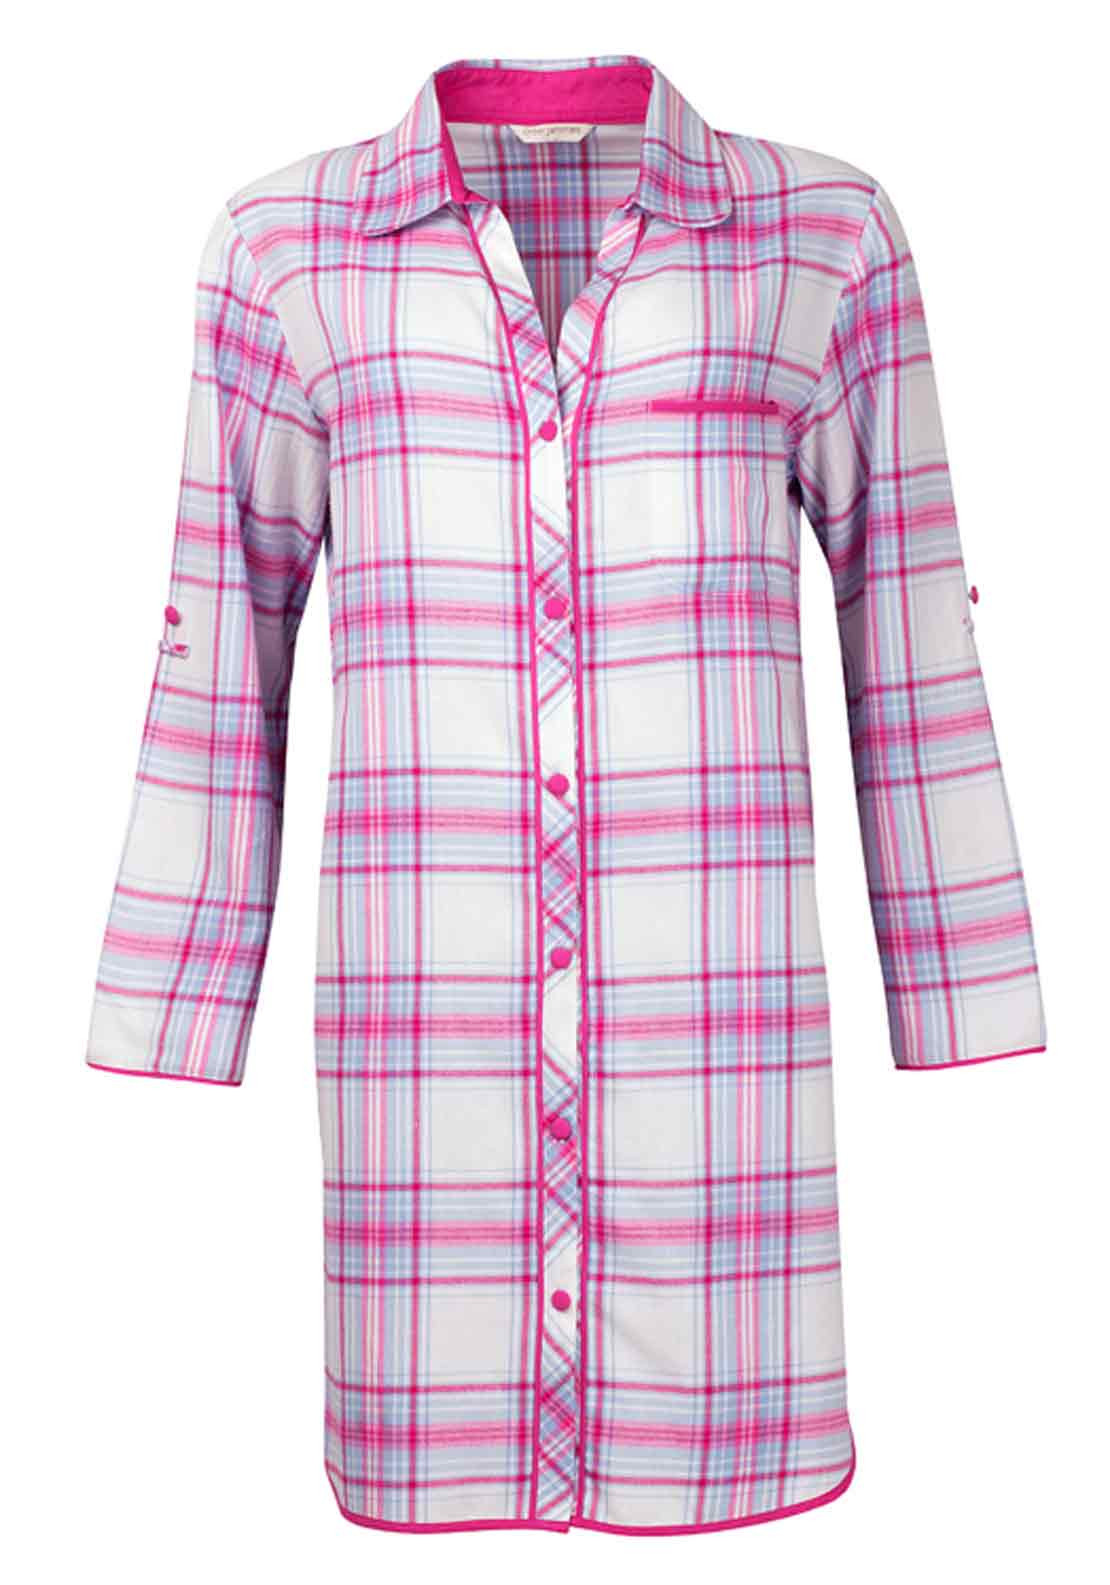 Cyberjammies Floral Fun Checked Brushed Cotton Nightshirt, Pink and Blue